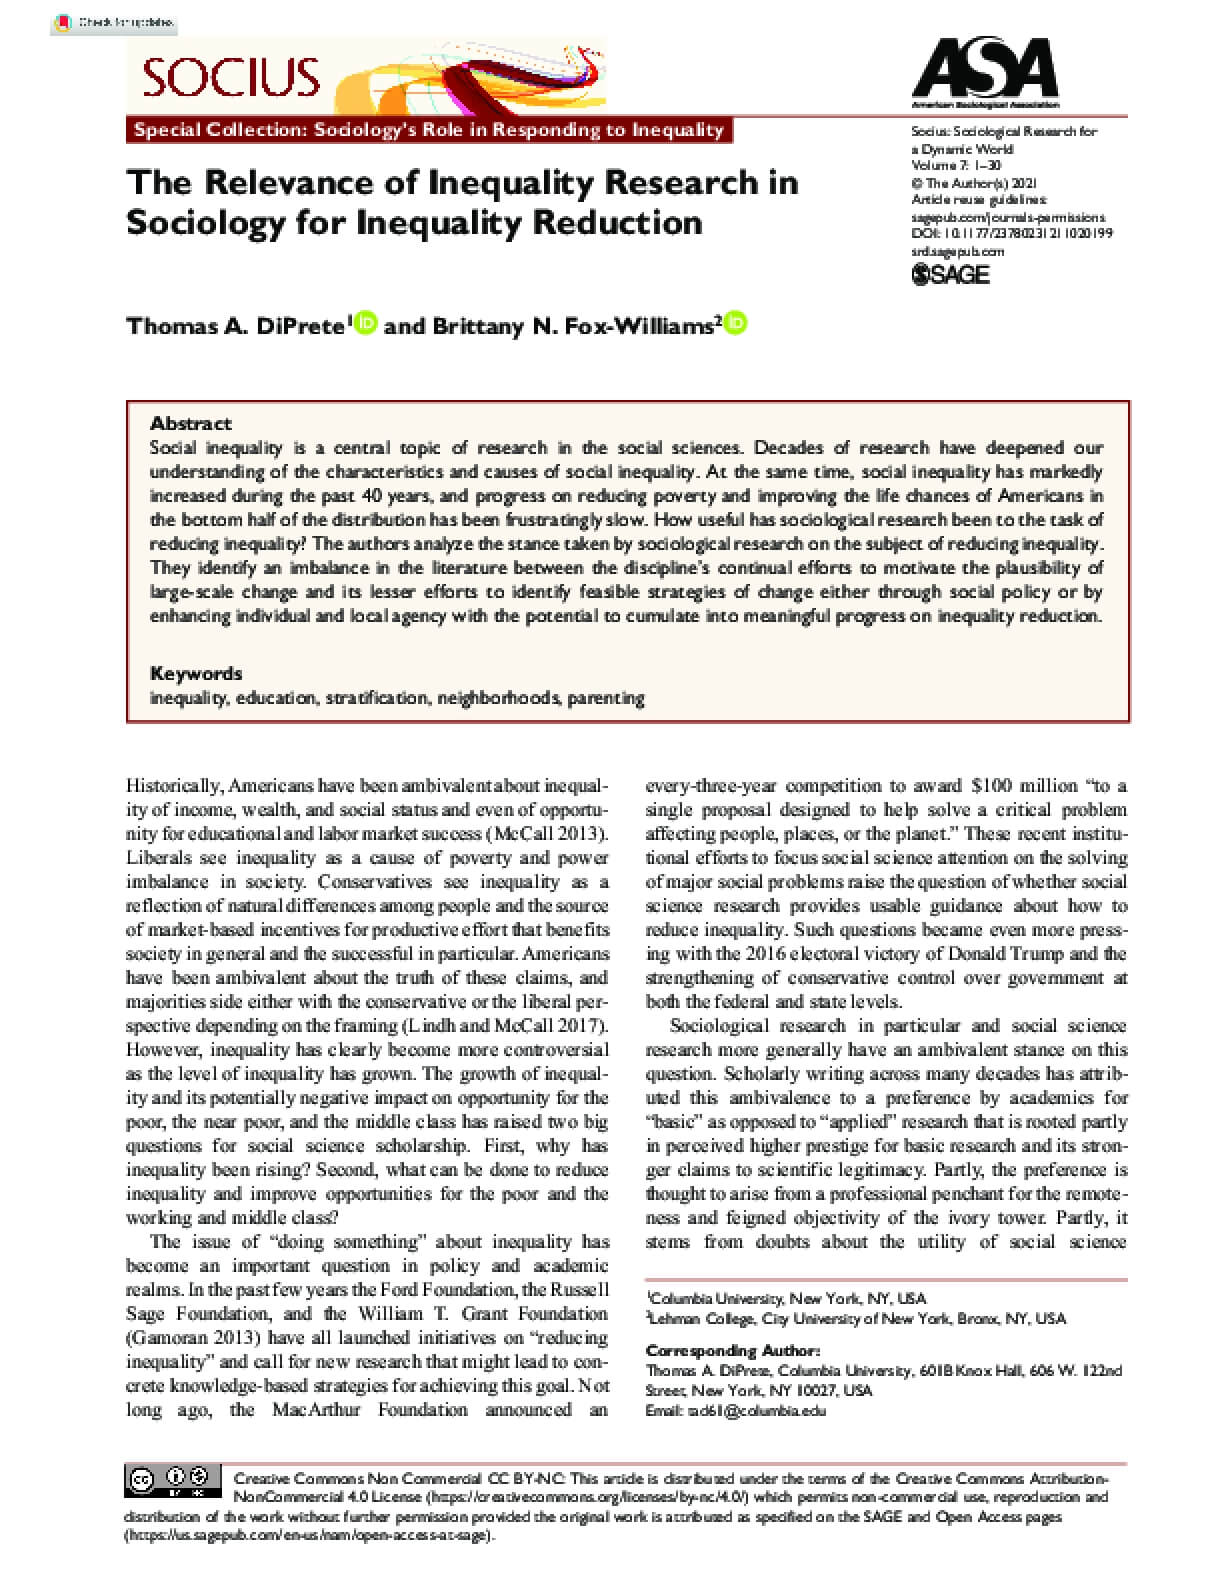 The Relevance of Inequality Research in Sociology for Inequality Reduction